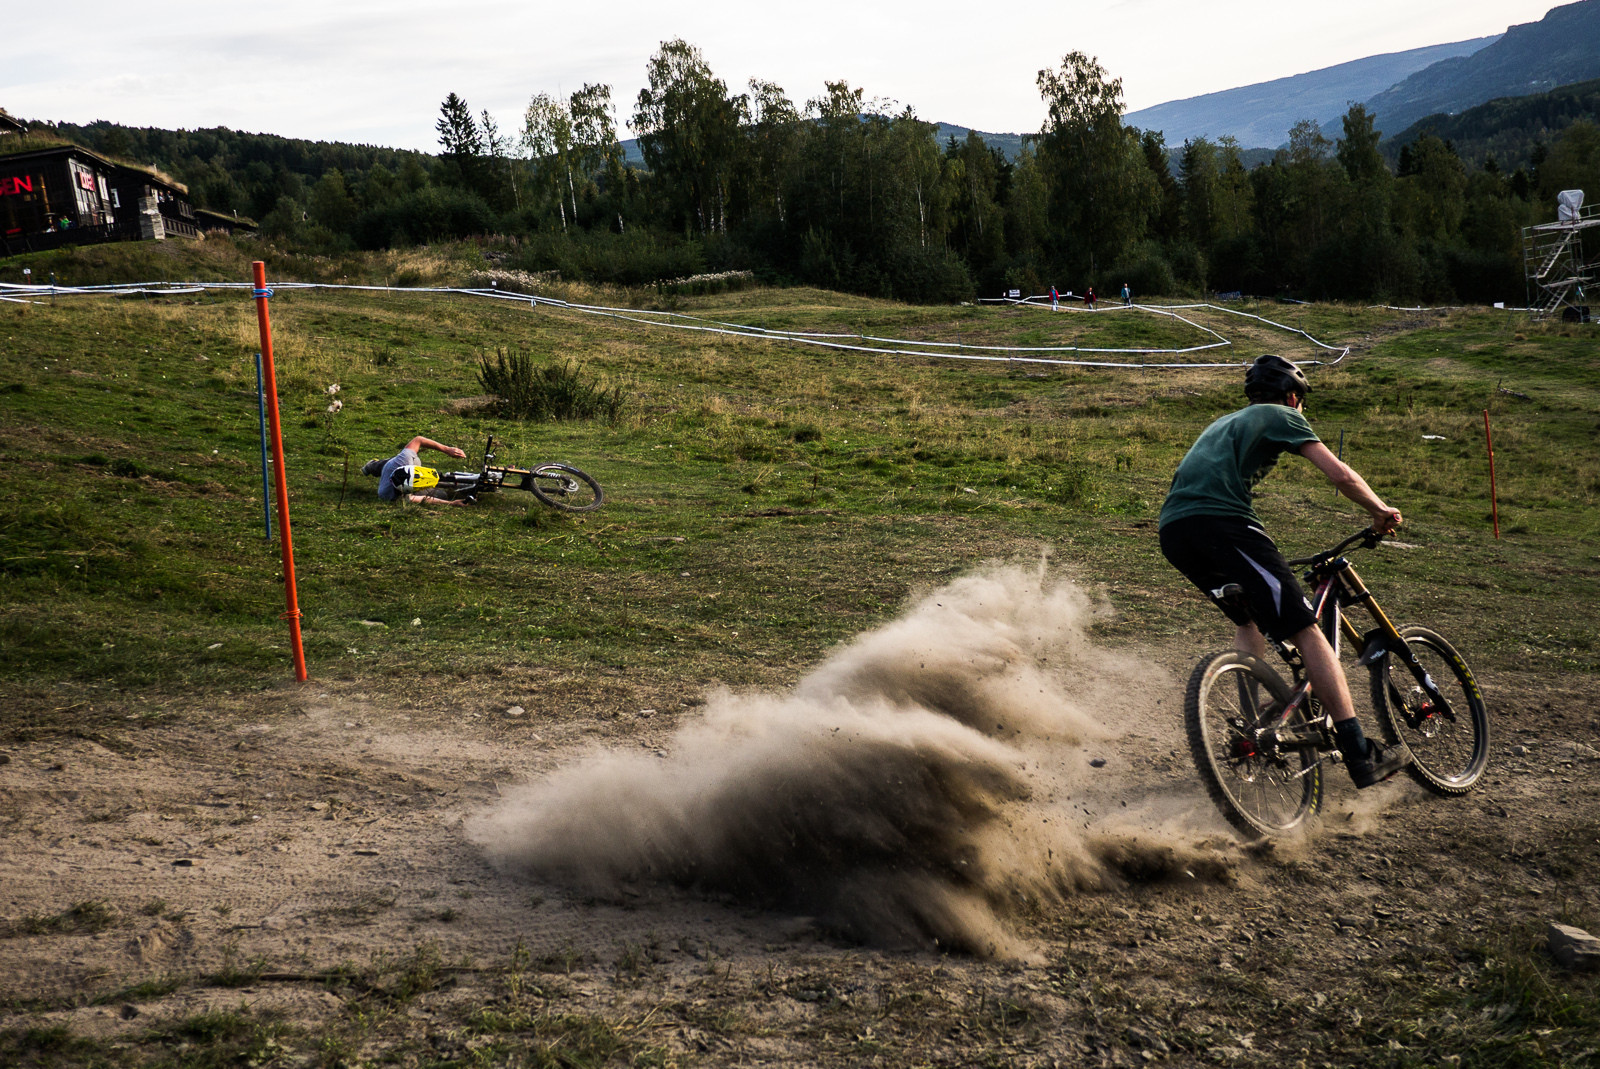 Philpott taking down Gee Milner at Industry World Champs - Has-Beens vs. Wannabes! Industry World Champs Race at Hafjell - Mountain Biking Pictures - Vital MTB